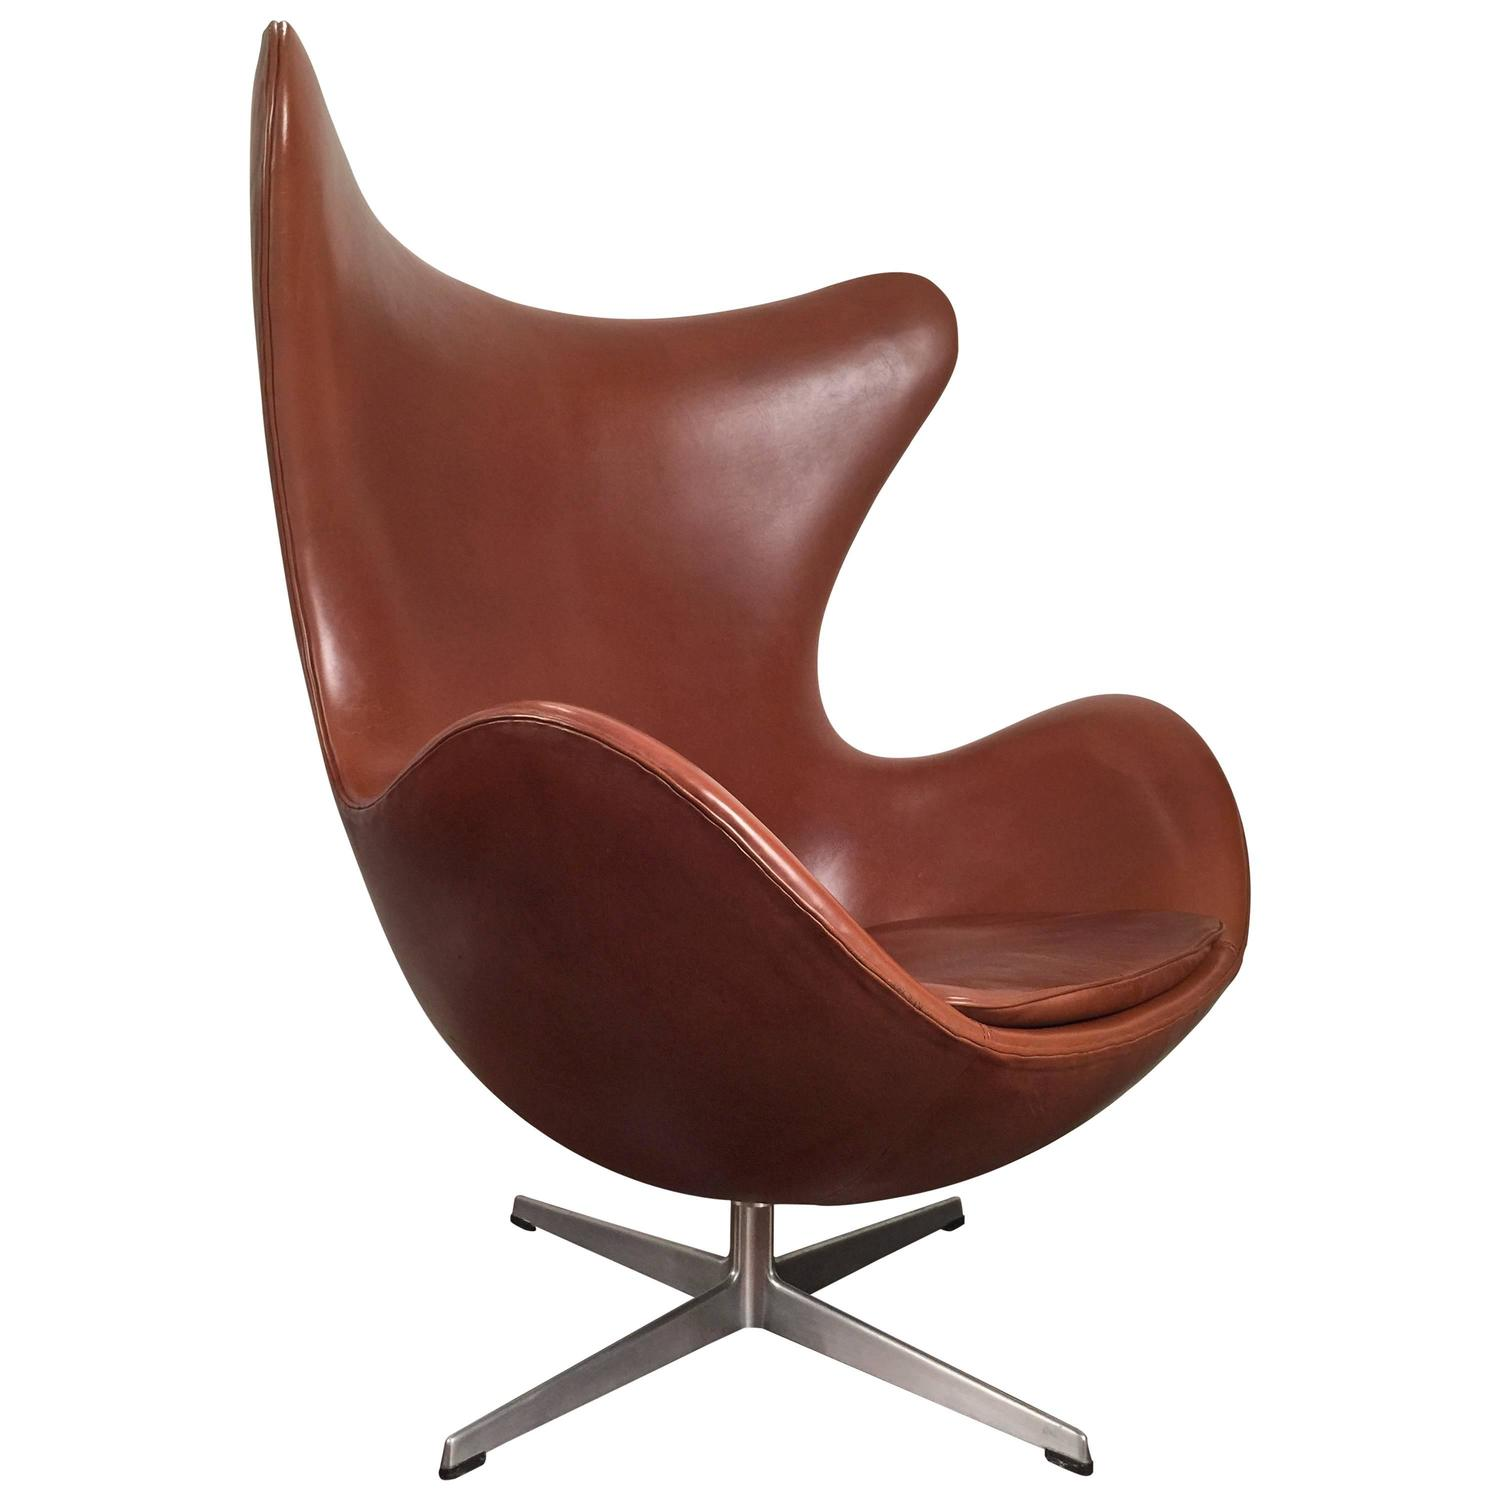 Early arne jacobsen egg chair in original brown leather by for Egg chair jacobsen